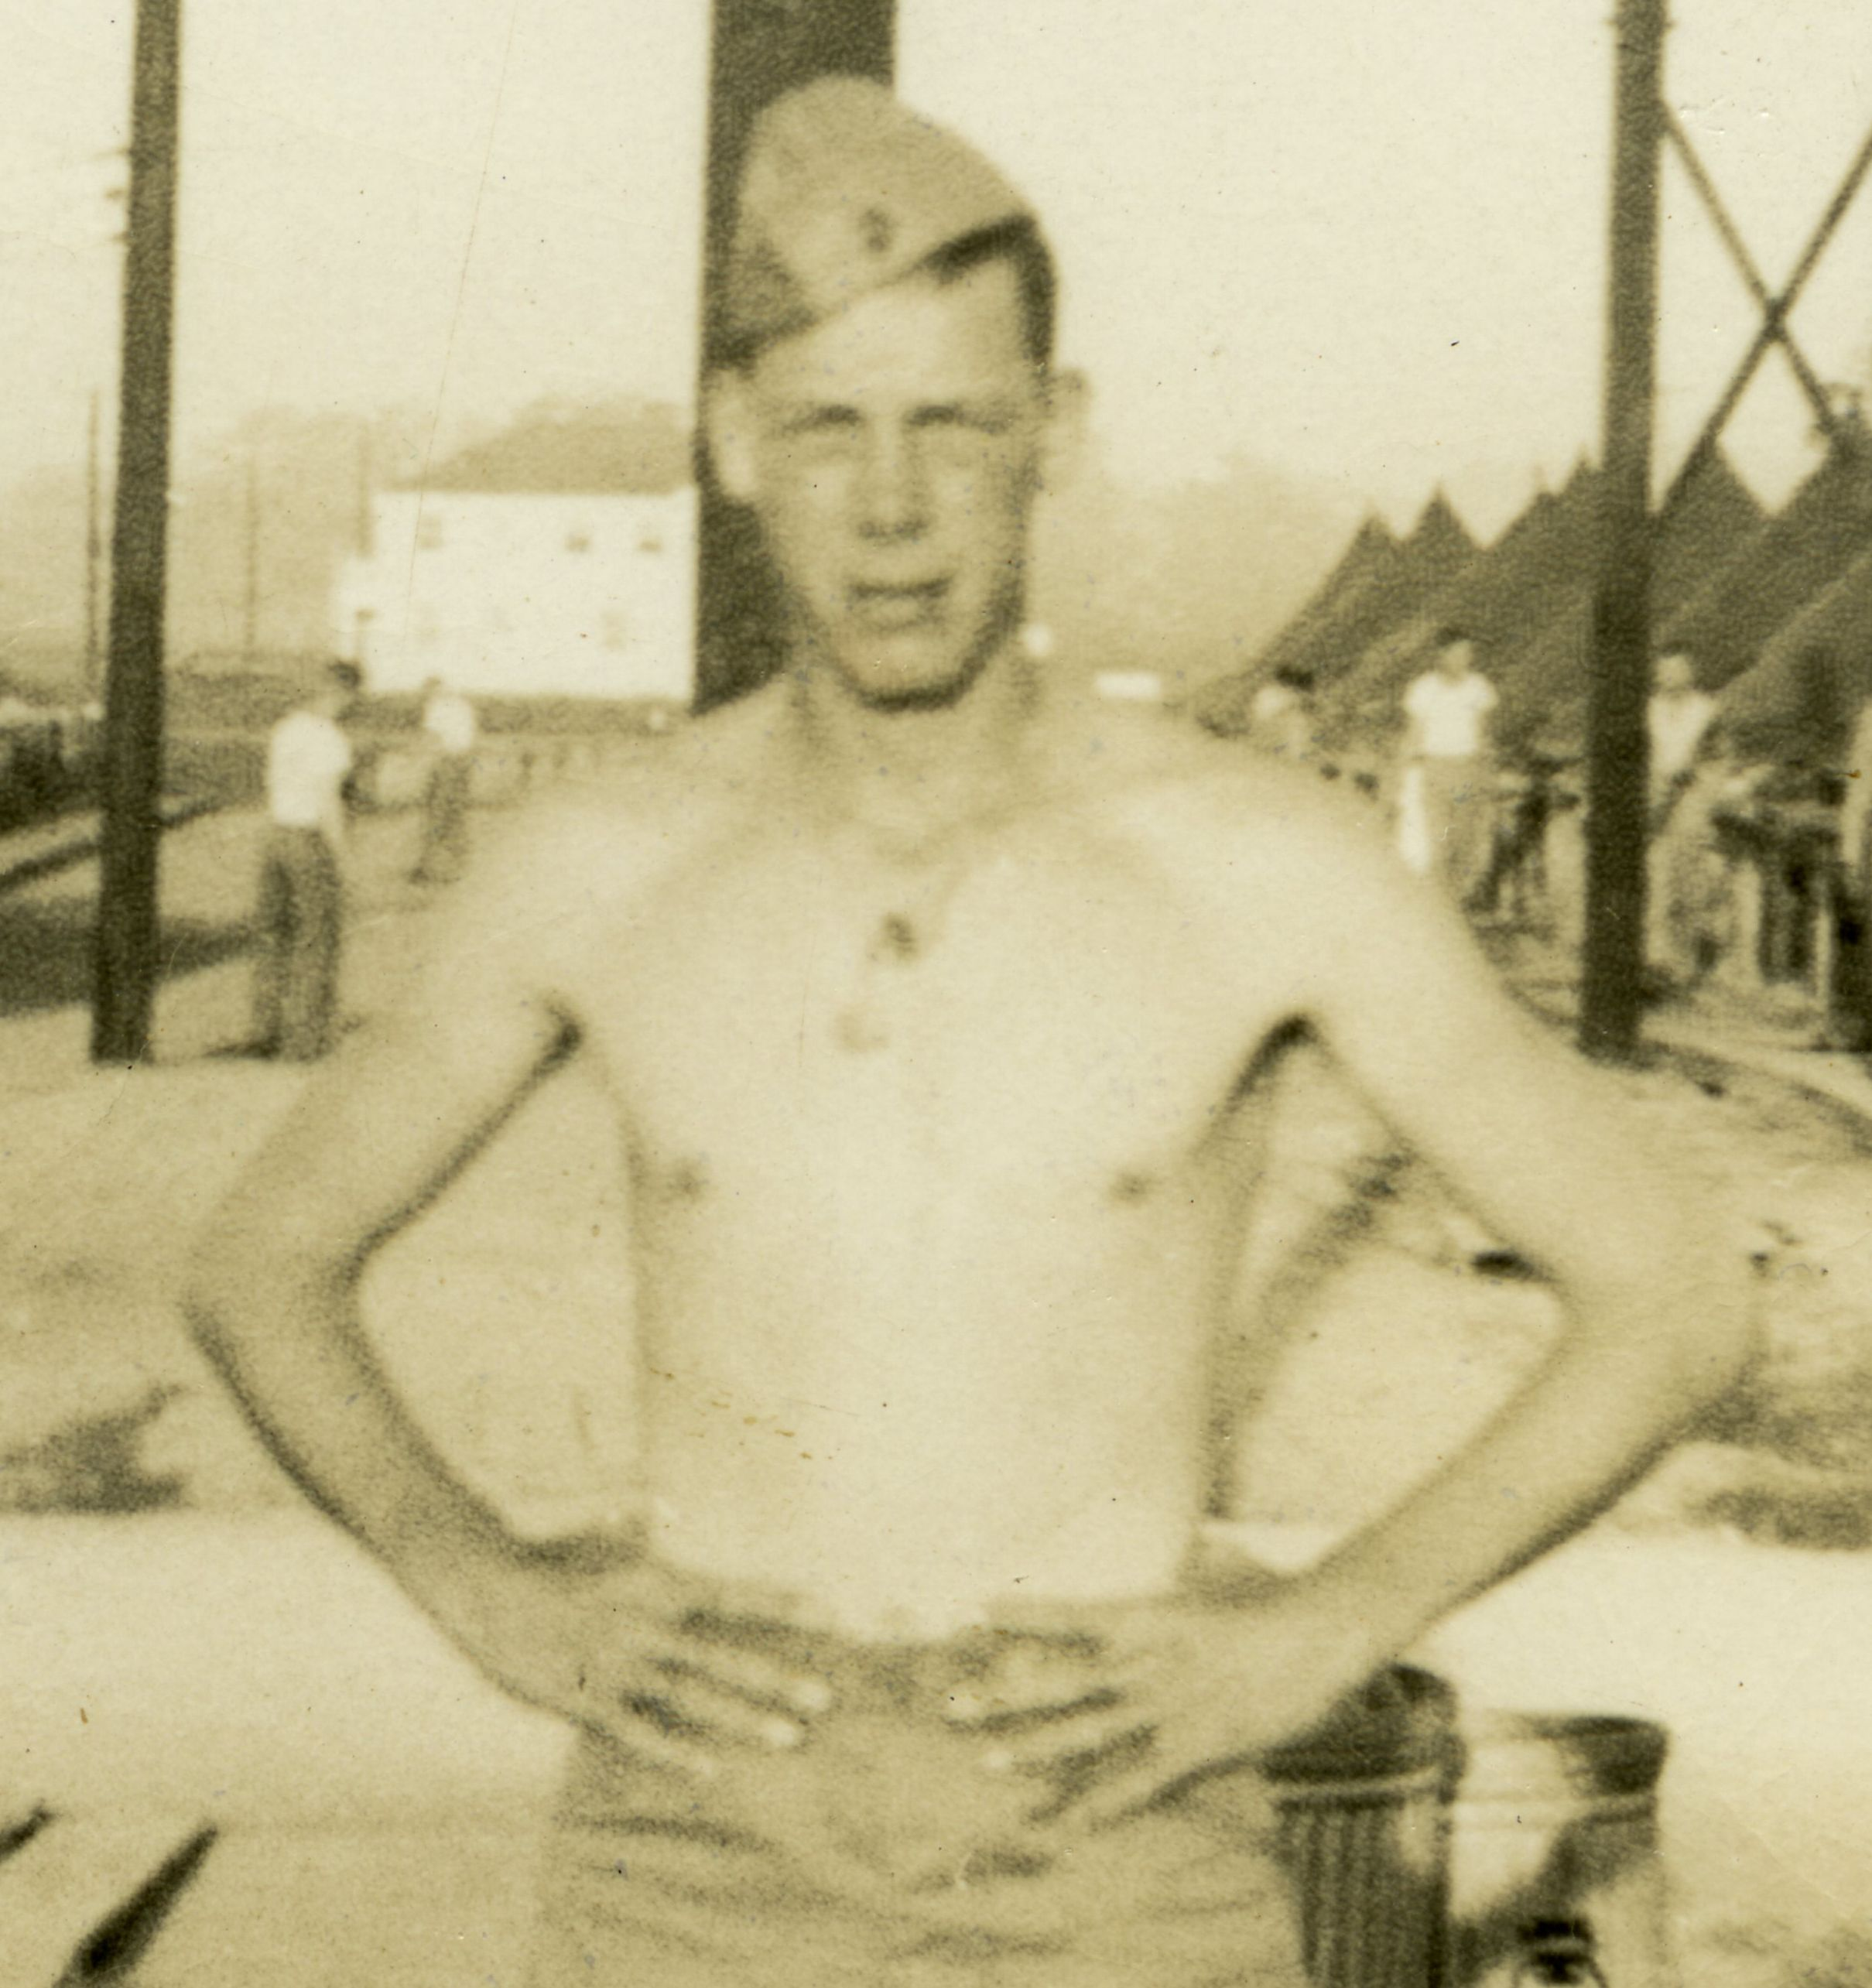 Lee Marvin Wartime Photo of Lee Marvin American Actor and Grade A Badass